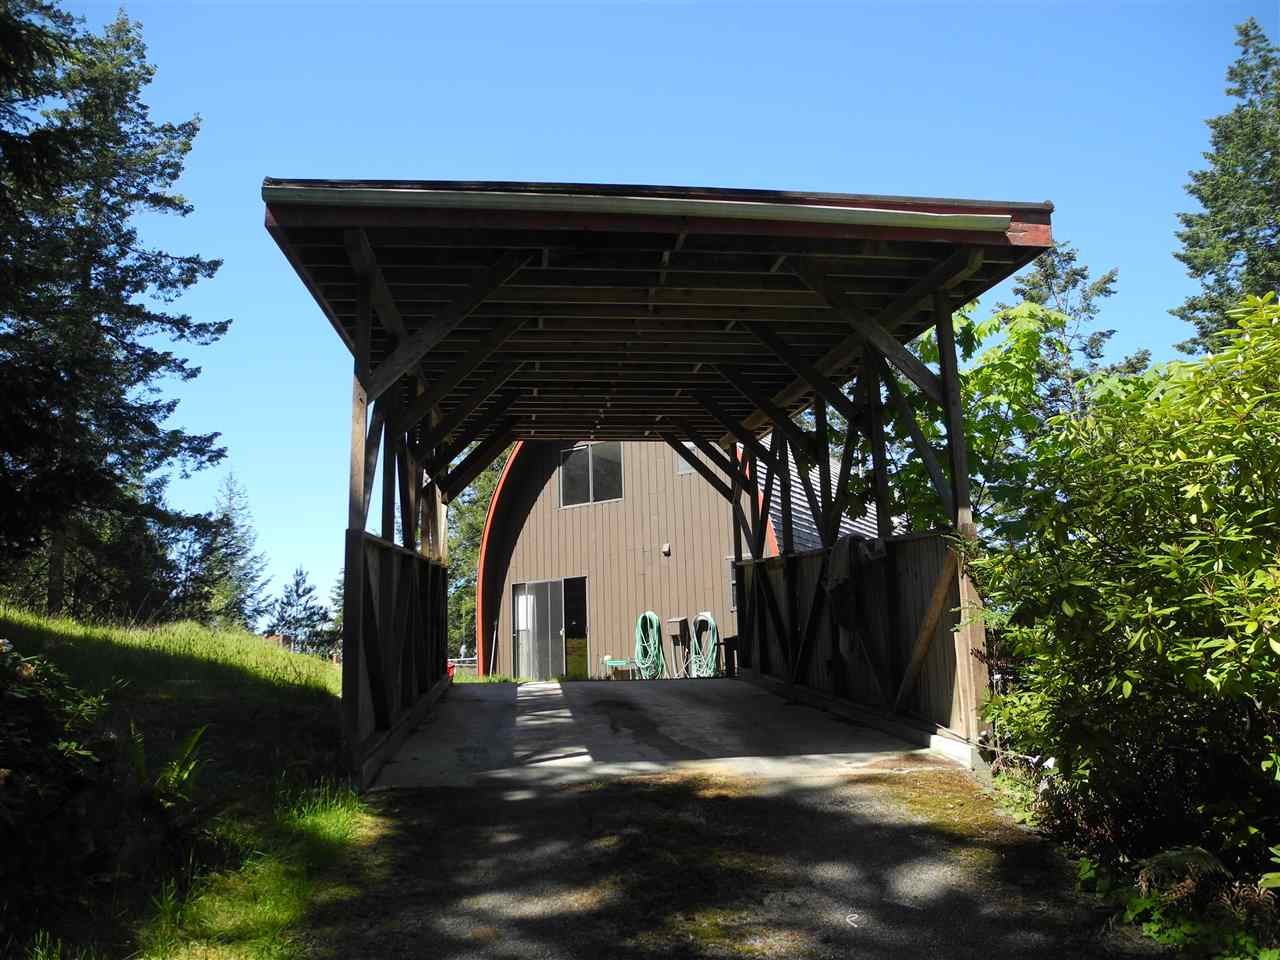 Photo 14: 4436 MCLINTOCK Road in Pender Harbour: Pender Harbour Egmont House for sale (Sunshine Coast)  : MLS(r) # R2068891